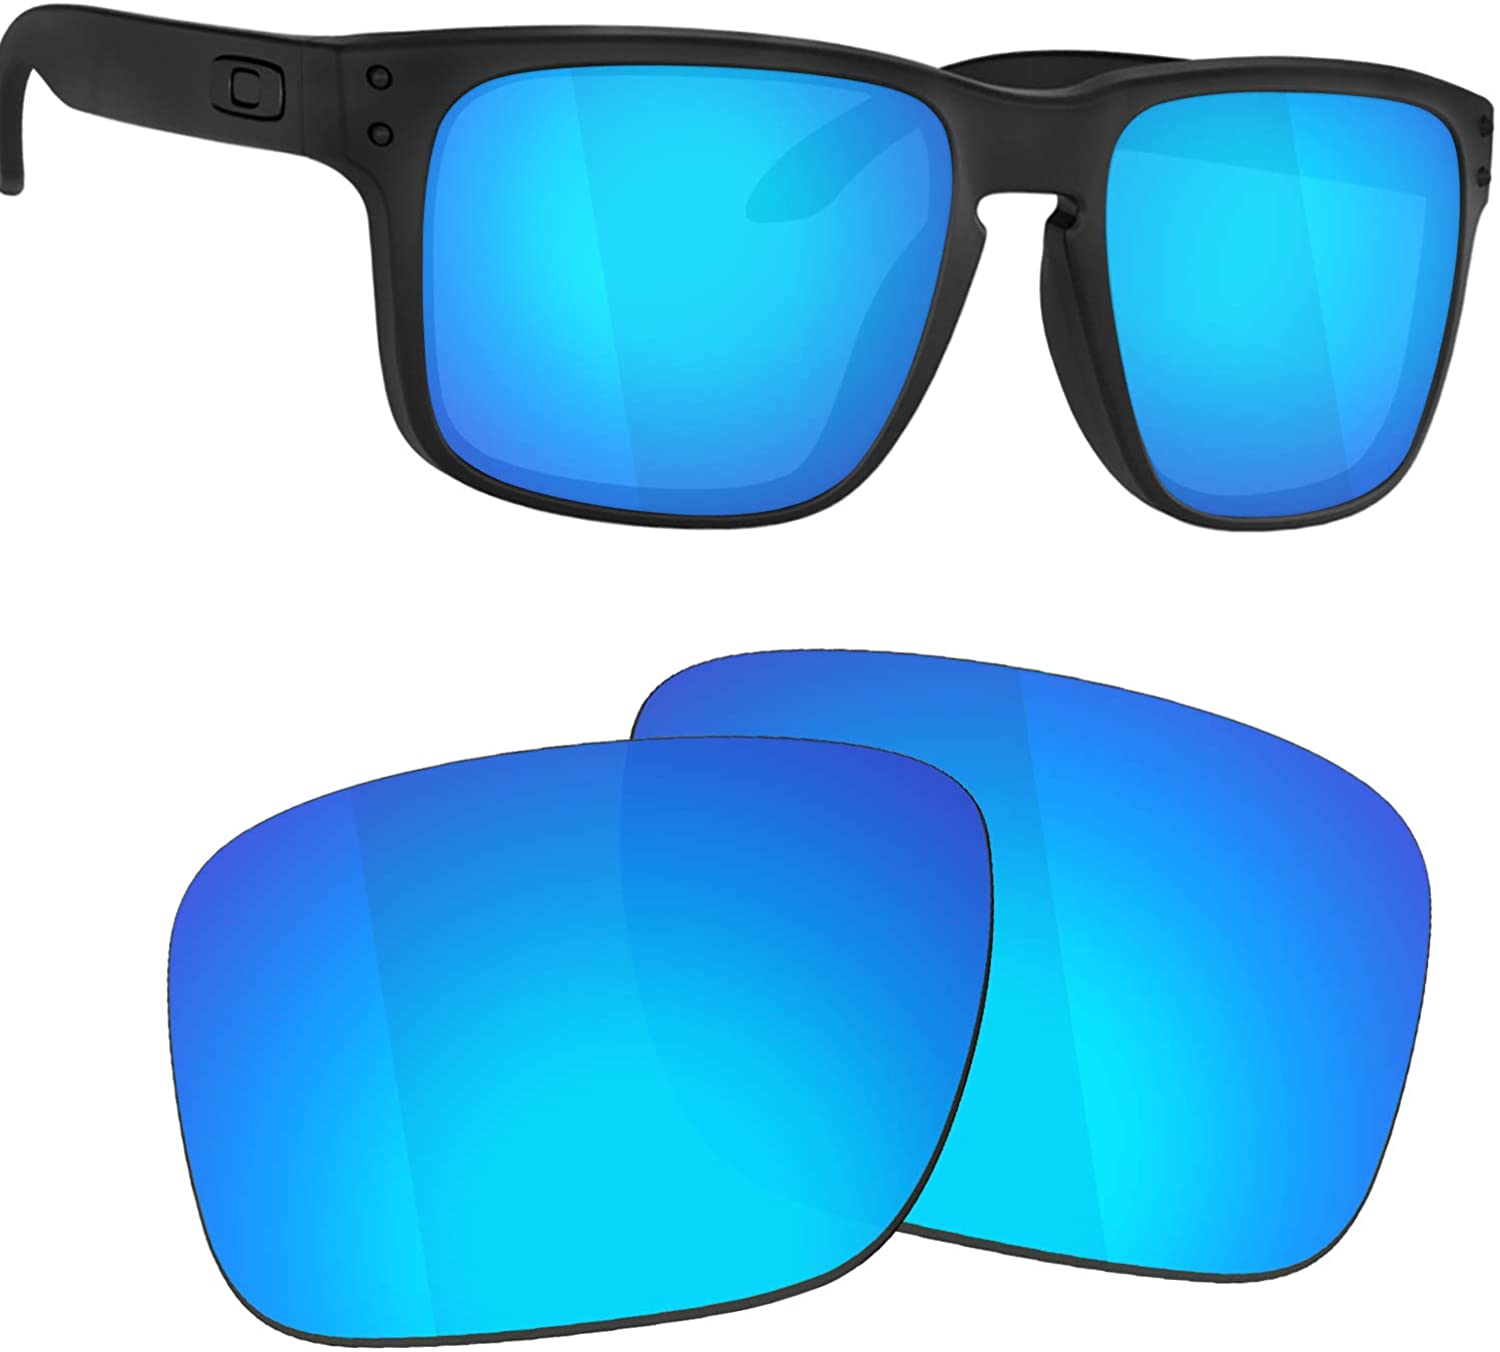 Guarda TRUE POLARIZED Replacement Lenses for Oakley Sliver OO9262 Sunglasses - Blue Mirrored